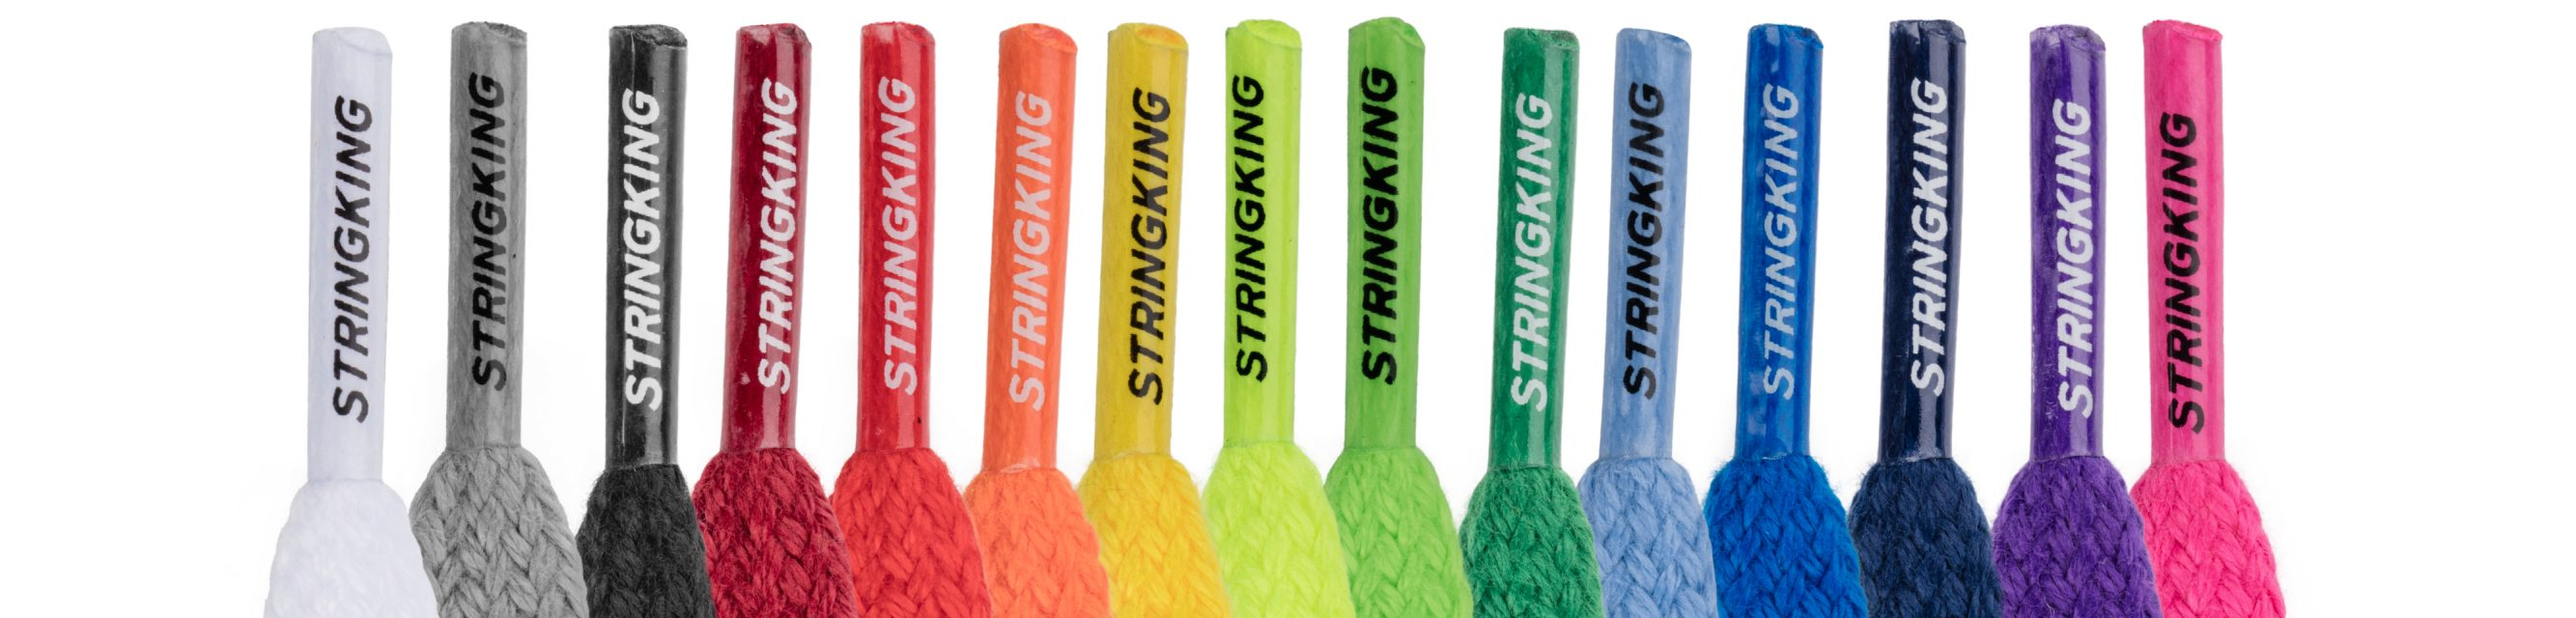 StringKing Lacrosse Mesh Stringing Supplies Shooting Lace Color Options Tips